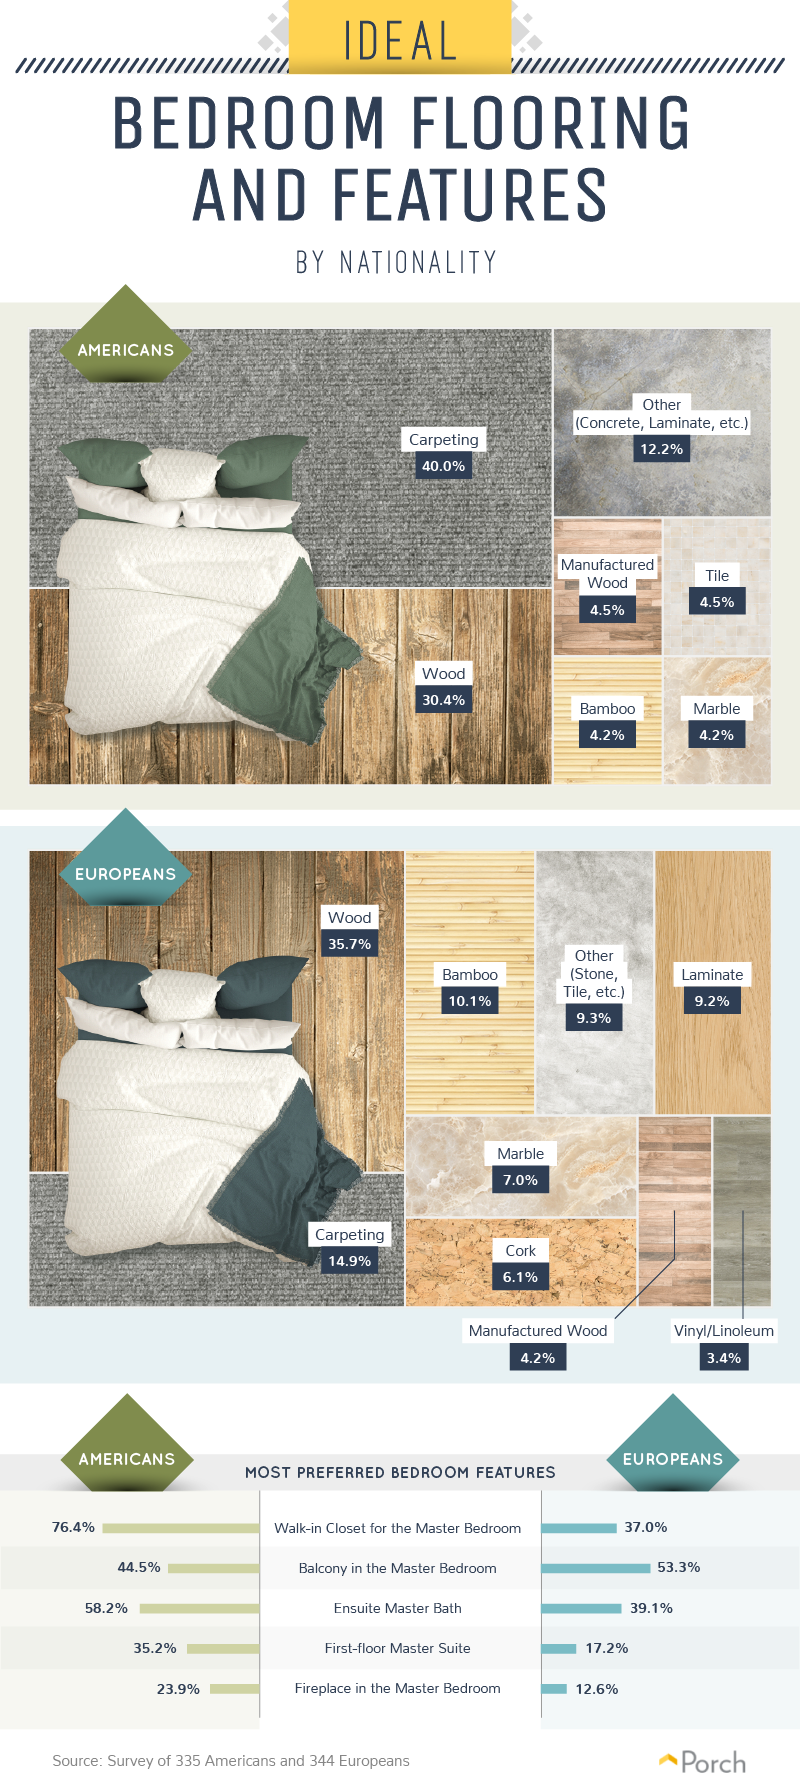 The ideal home bedroom flooring, by nationality